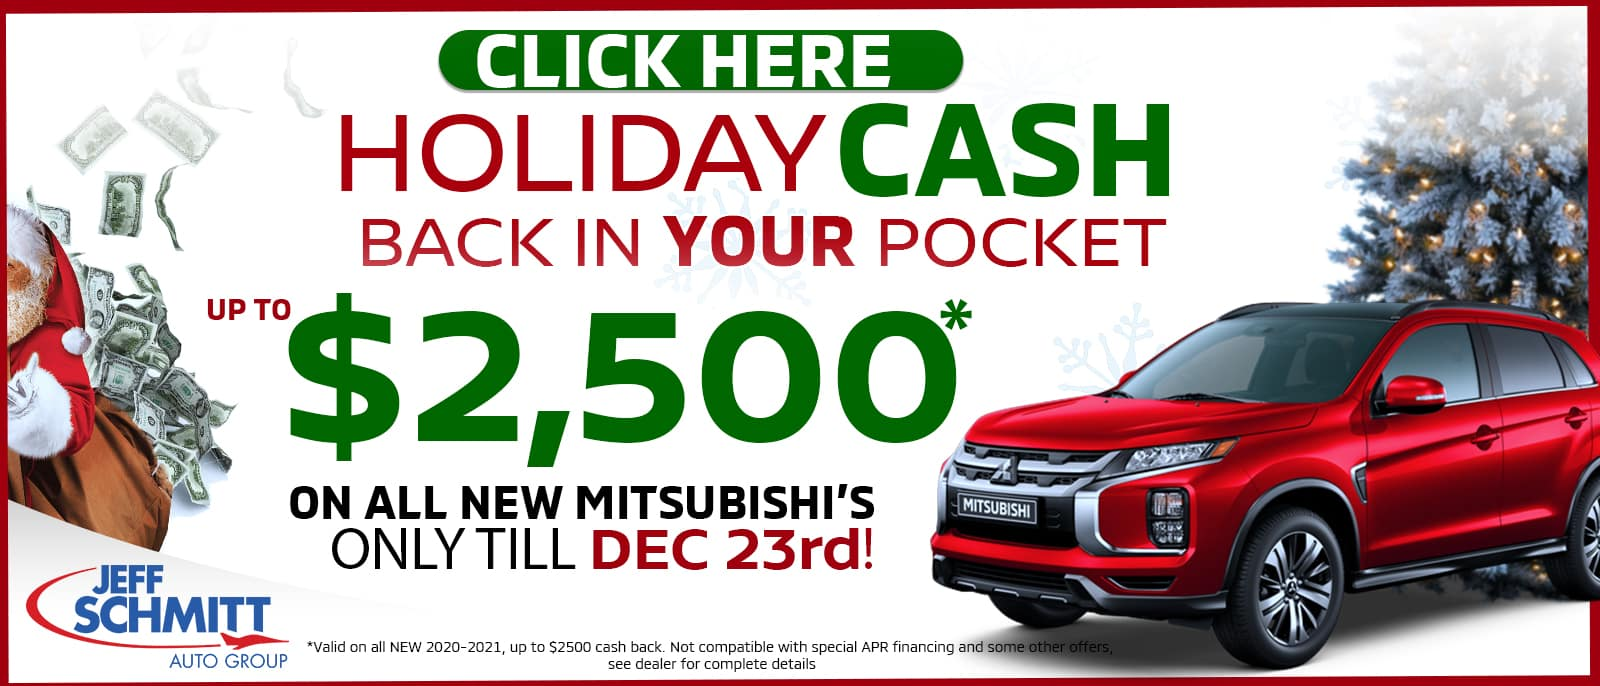 Holiday Cash up to $2,500